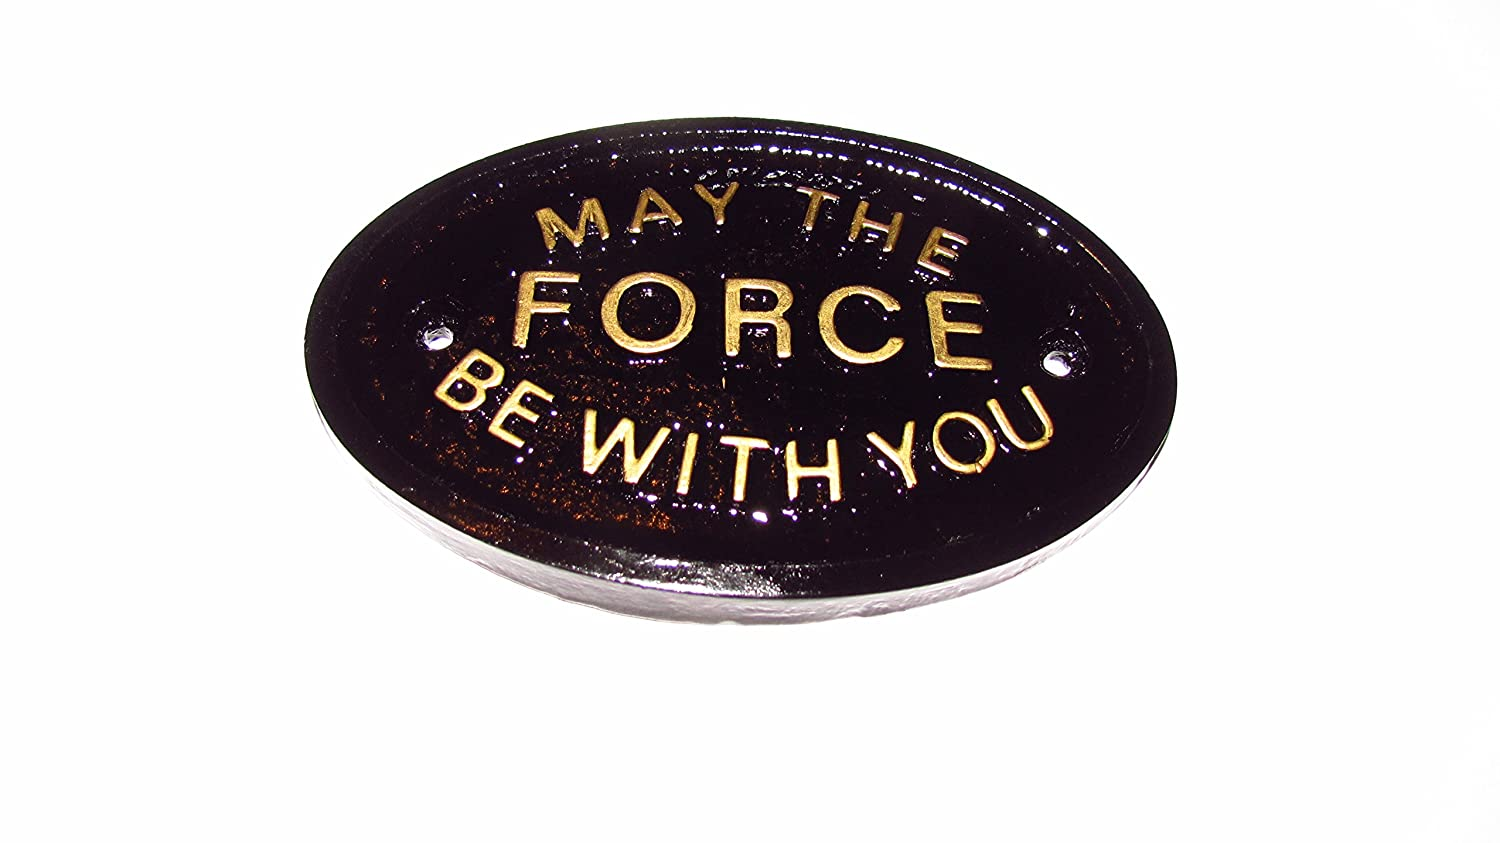 'May The Force Be With You' Haus/Garten Wandschild in schwarz mit gold erhabenen Schriftzug